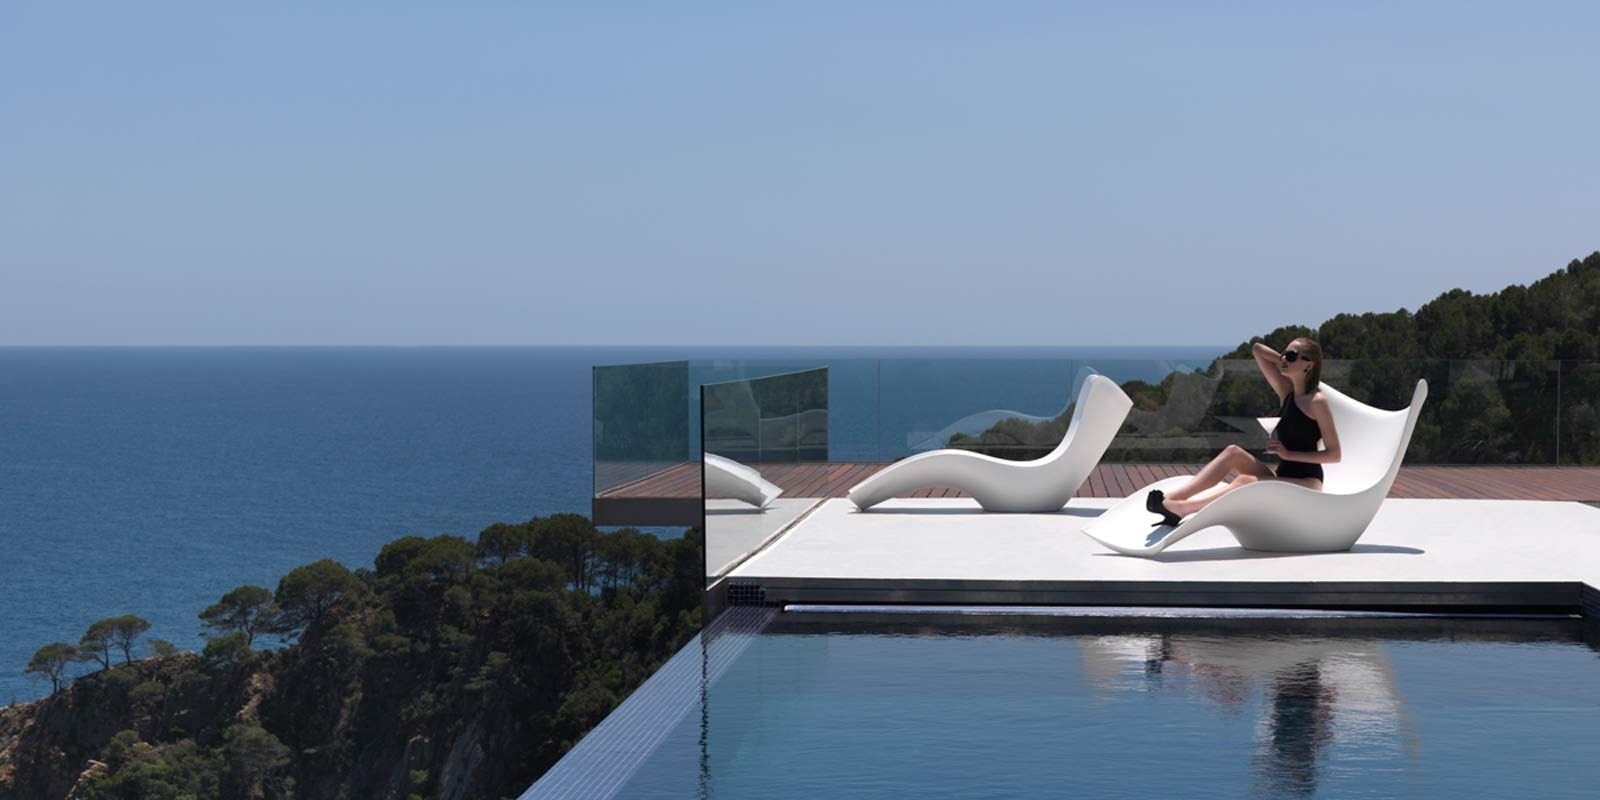 luxury-outdoor-design-furniture-sunchaise-surf-karimrashid-vondom (4)